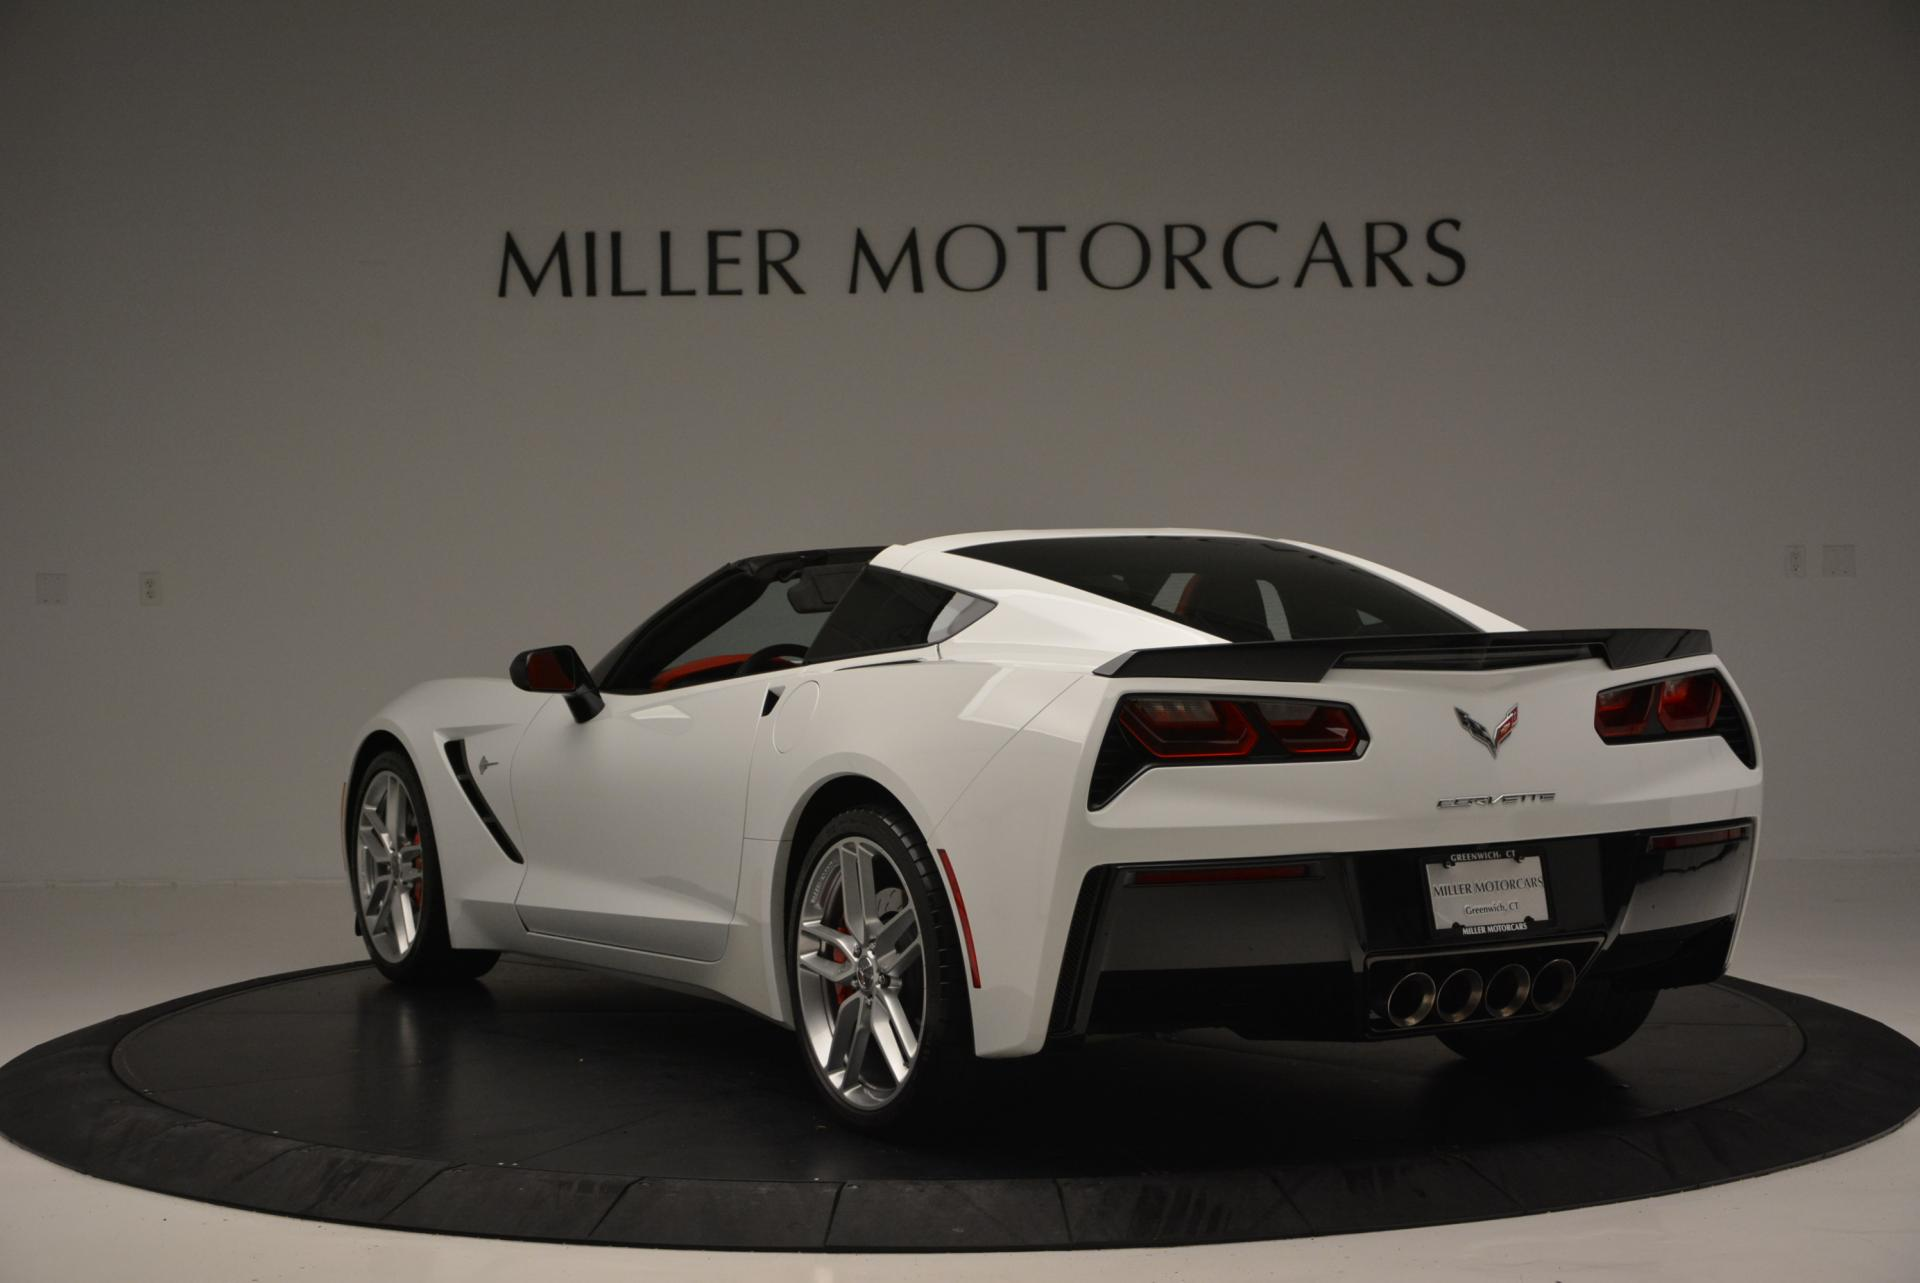 Used 2014 Chevrolet Corvette Stingray Z51 For Sale In Greenwich, CT. Alfa Romeo of Greenwich, 7089 529_p8